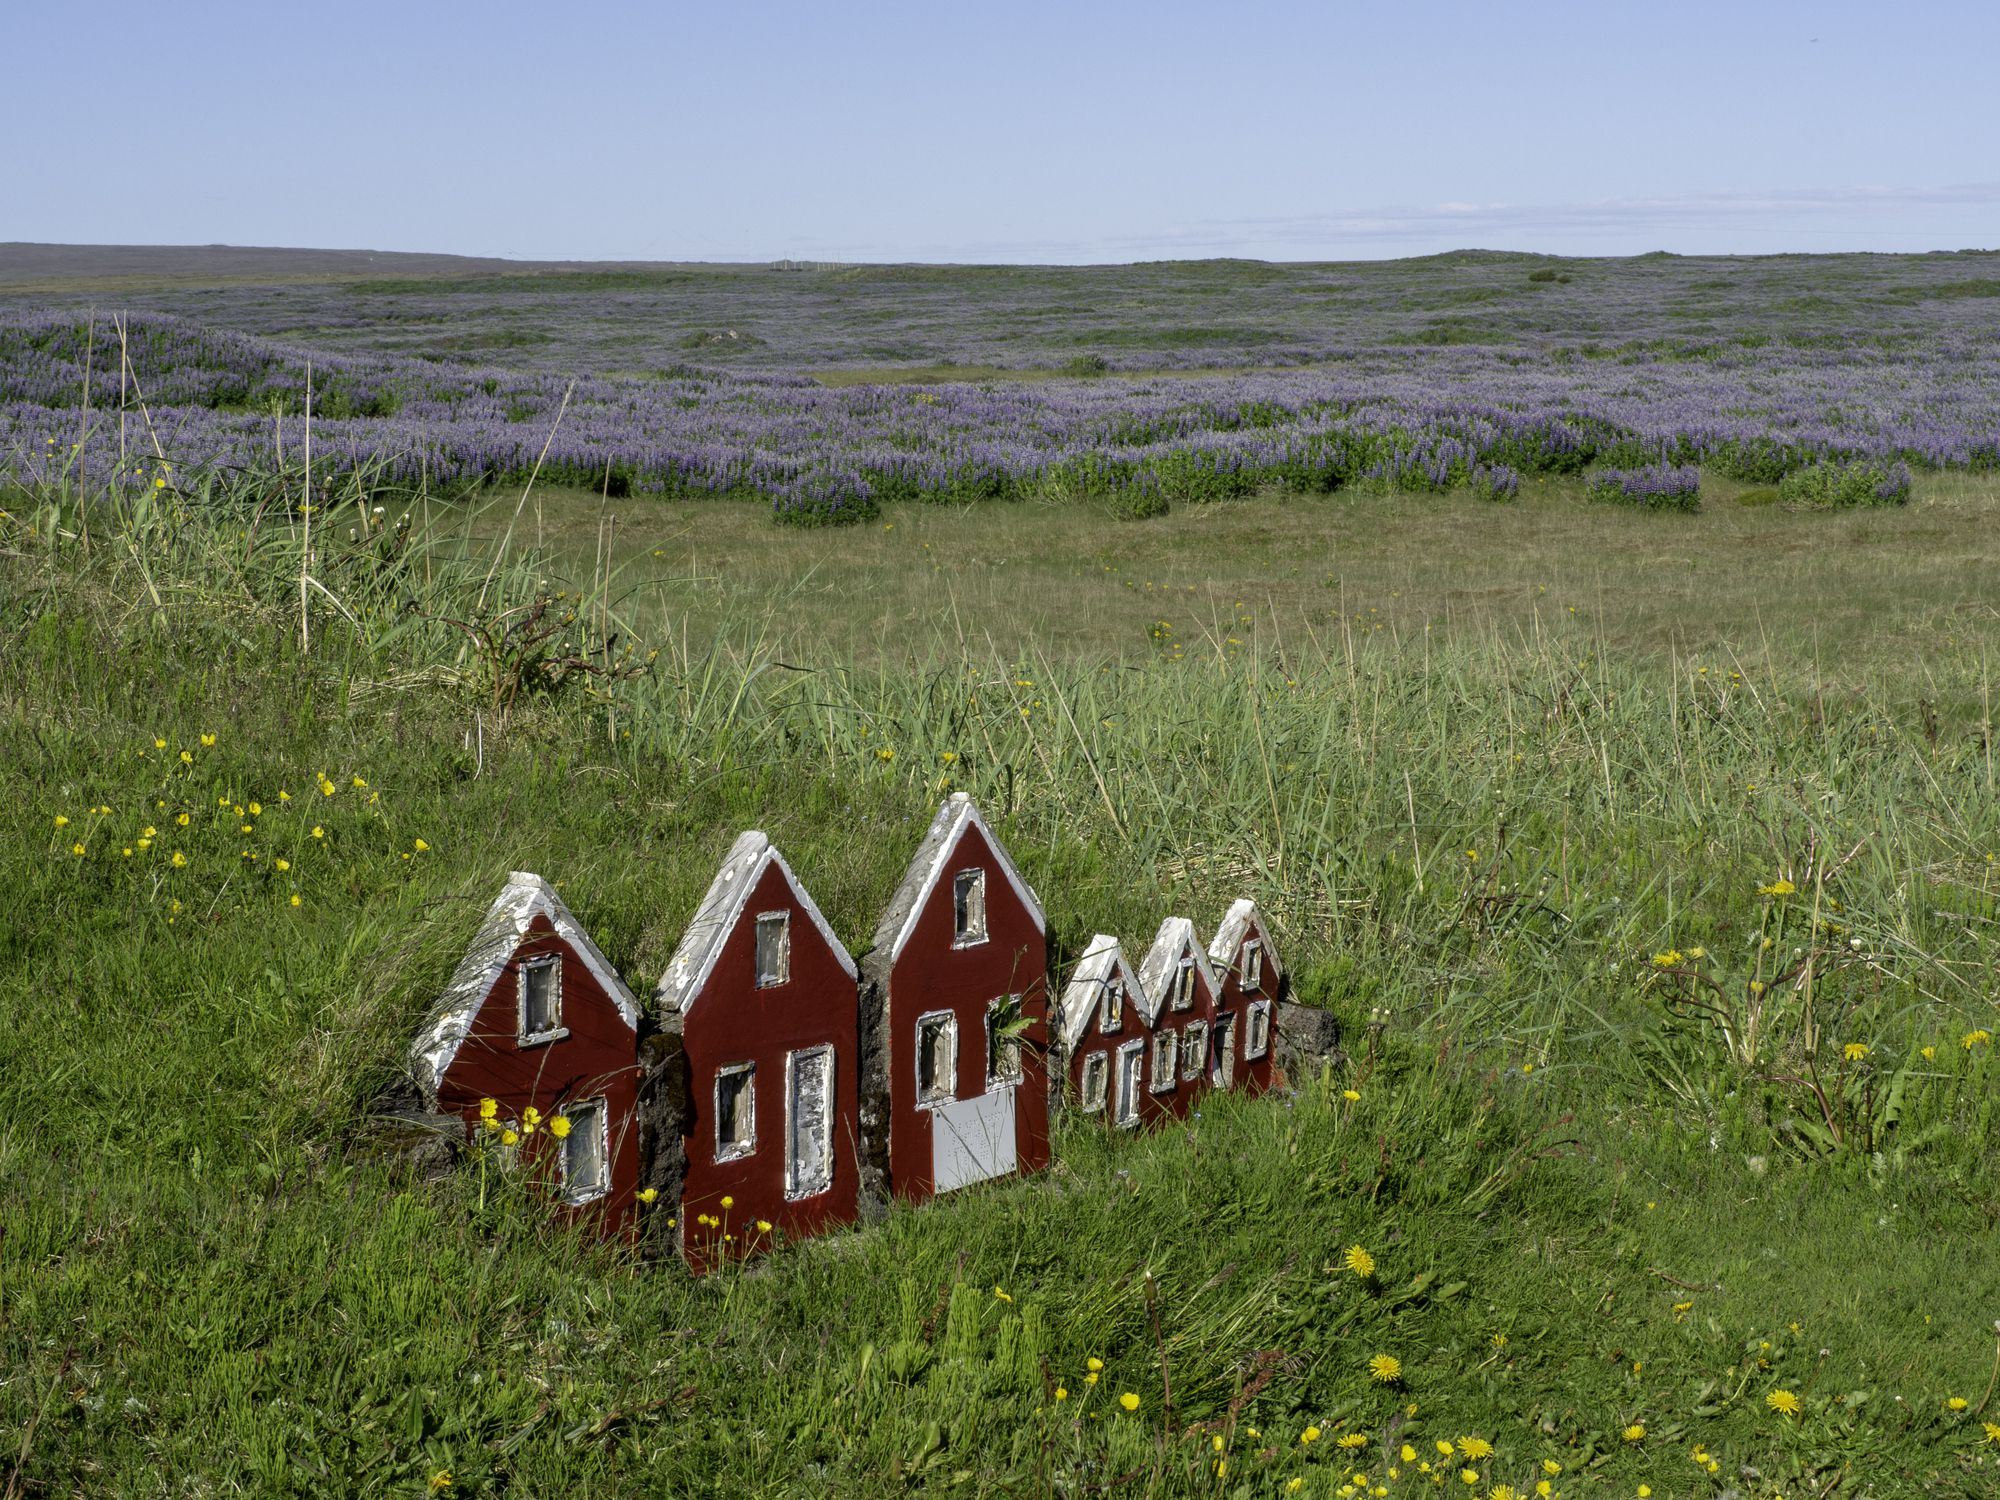 Iceland and Elves: A Guide to the Country's Beliefs in Magical Creatures